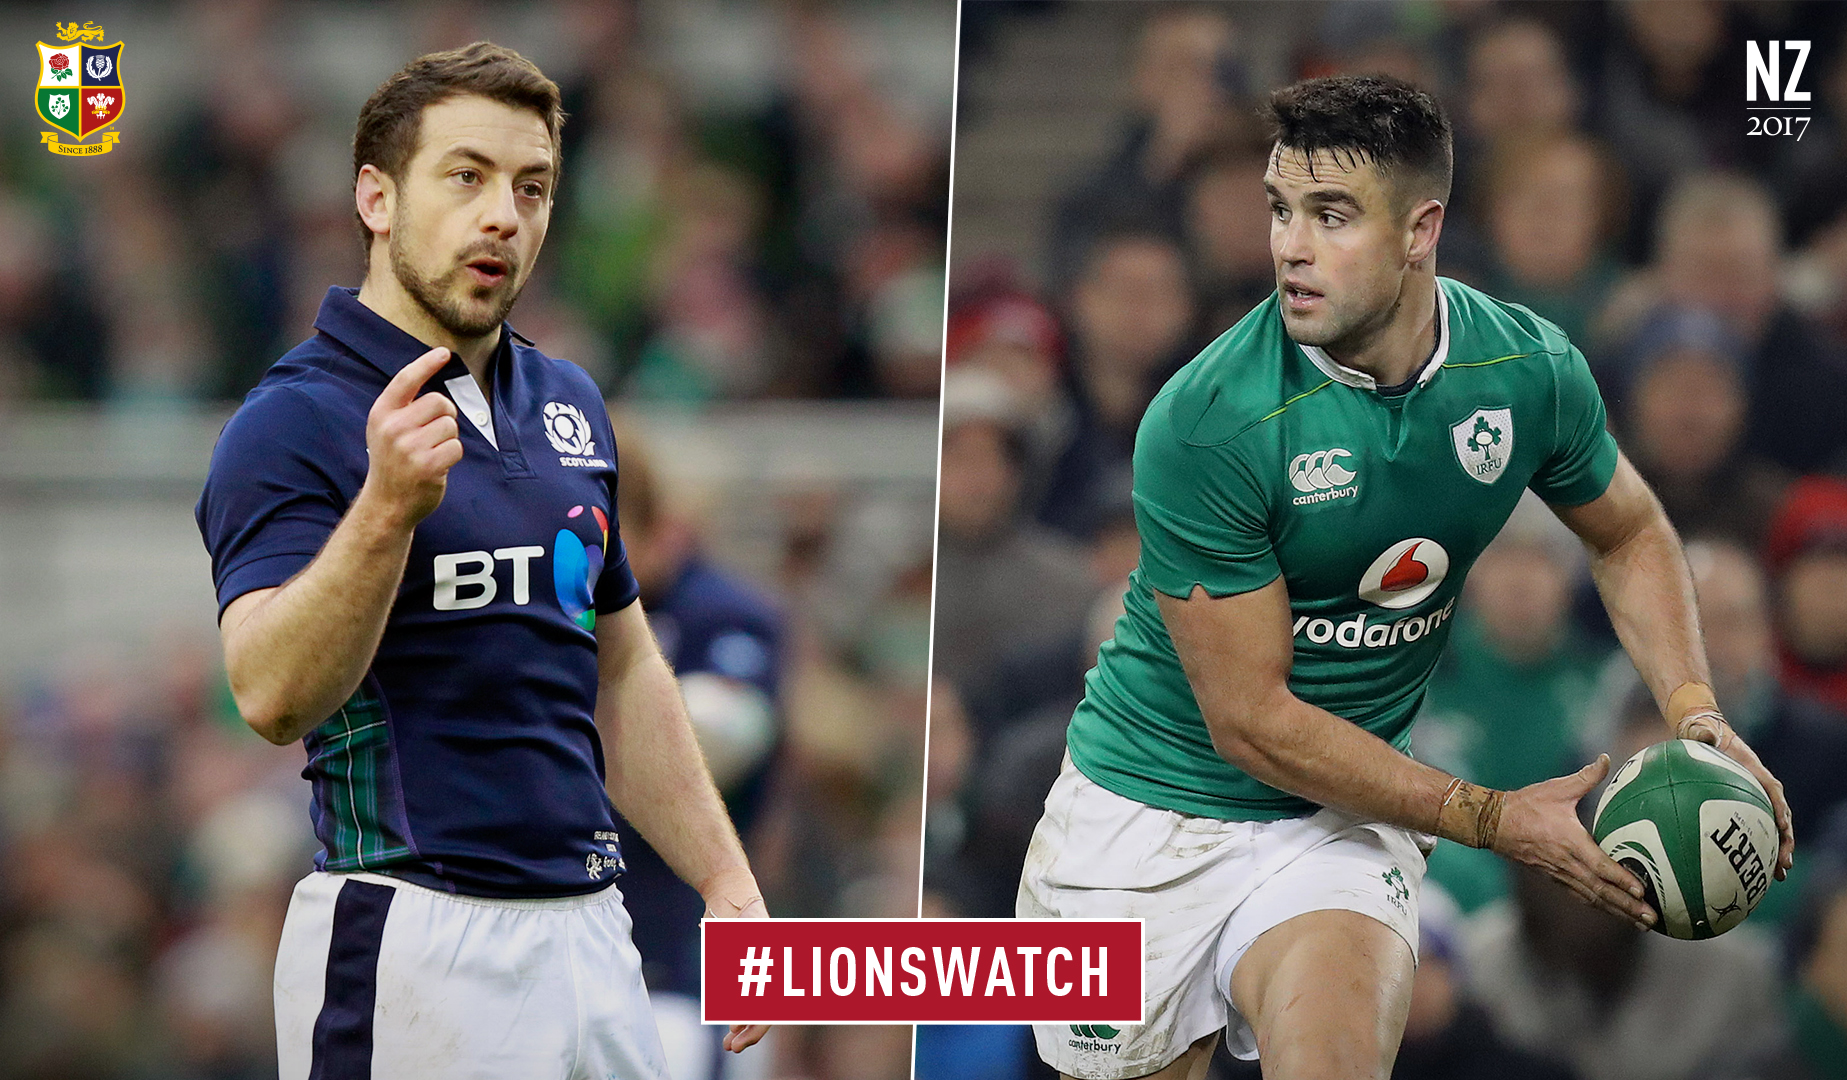 LionsWatch: Scotland v Ireland preview